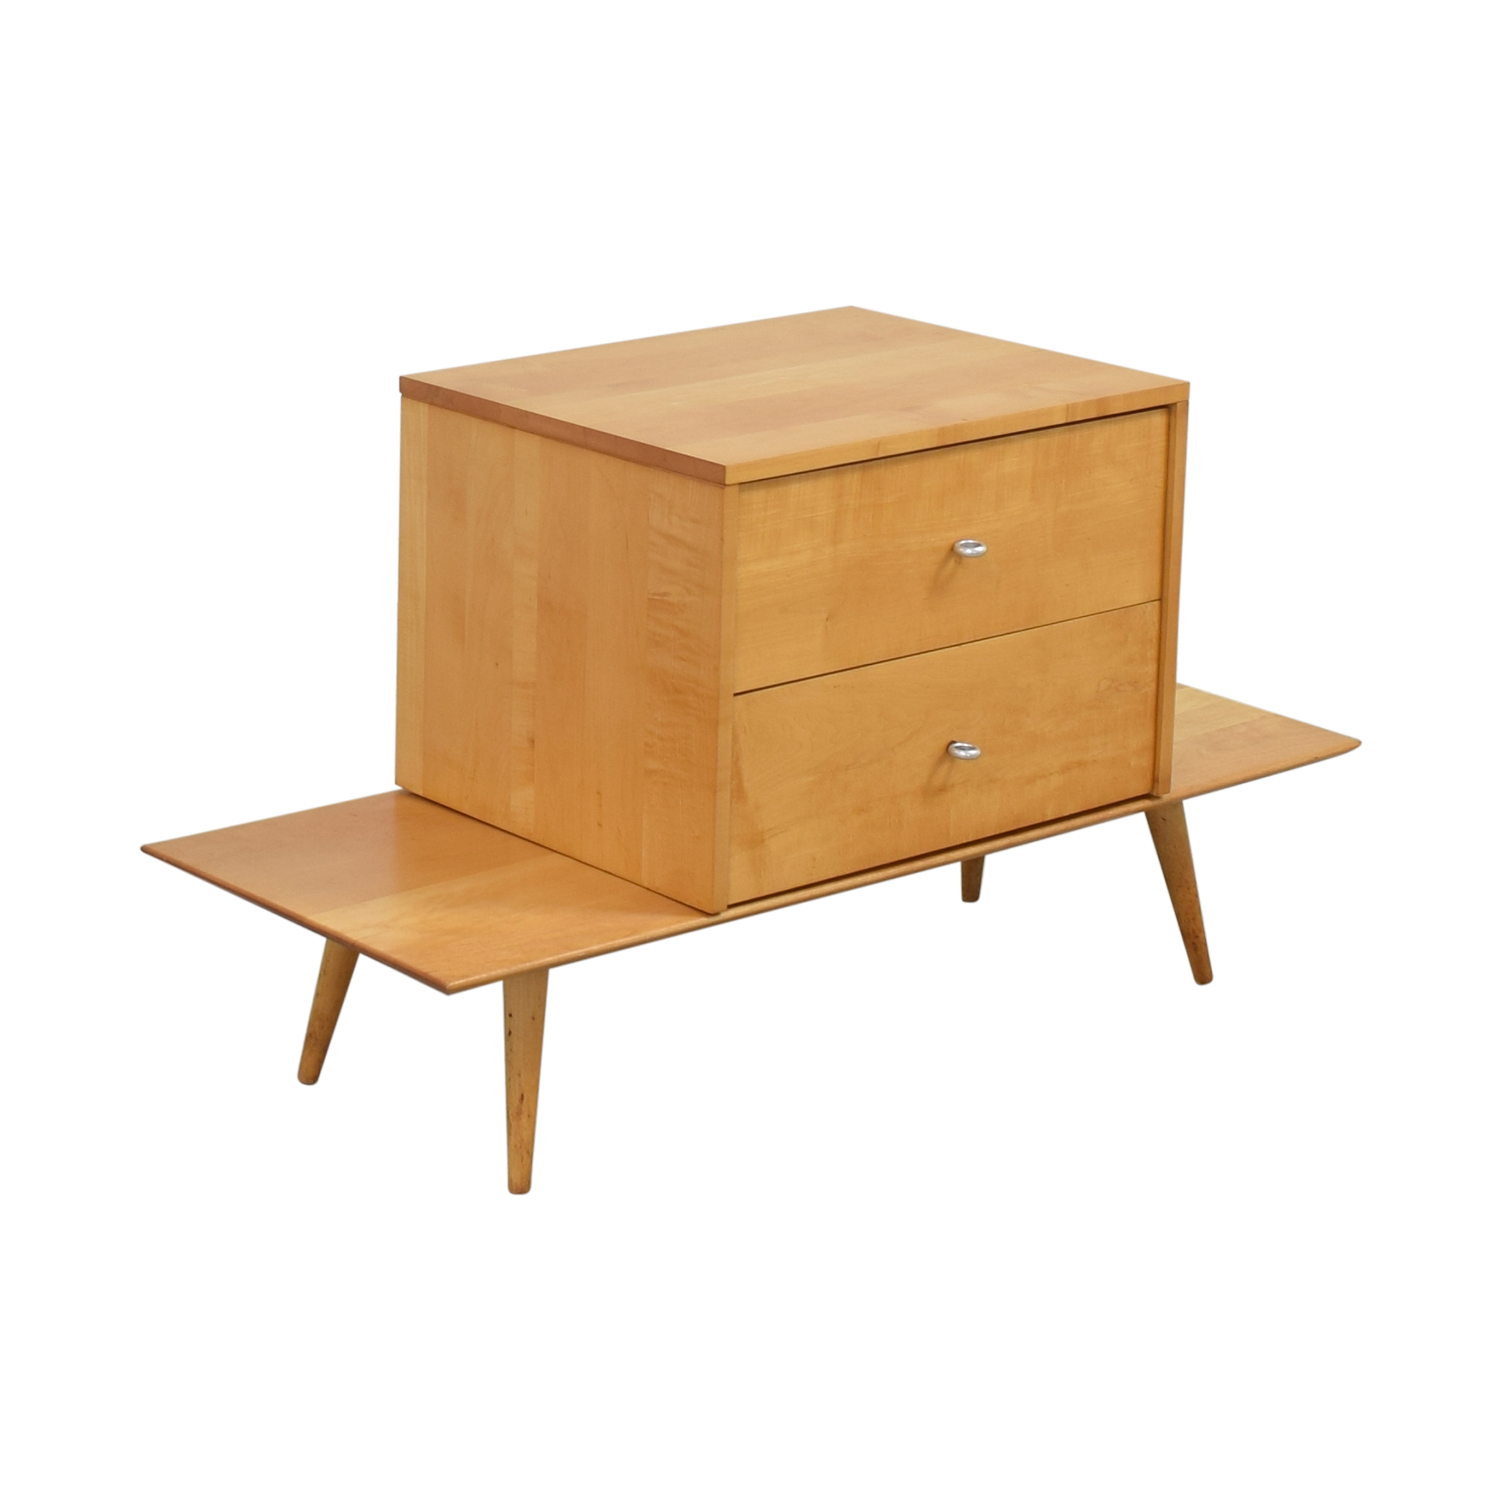 Paul McCobb Paul McCobb Planner Group Bench with Cabinet on sale